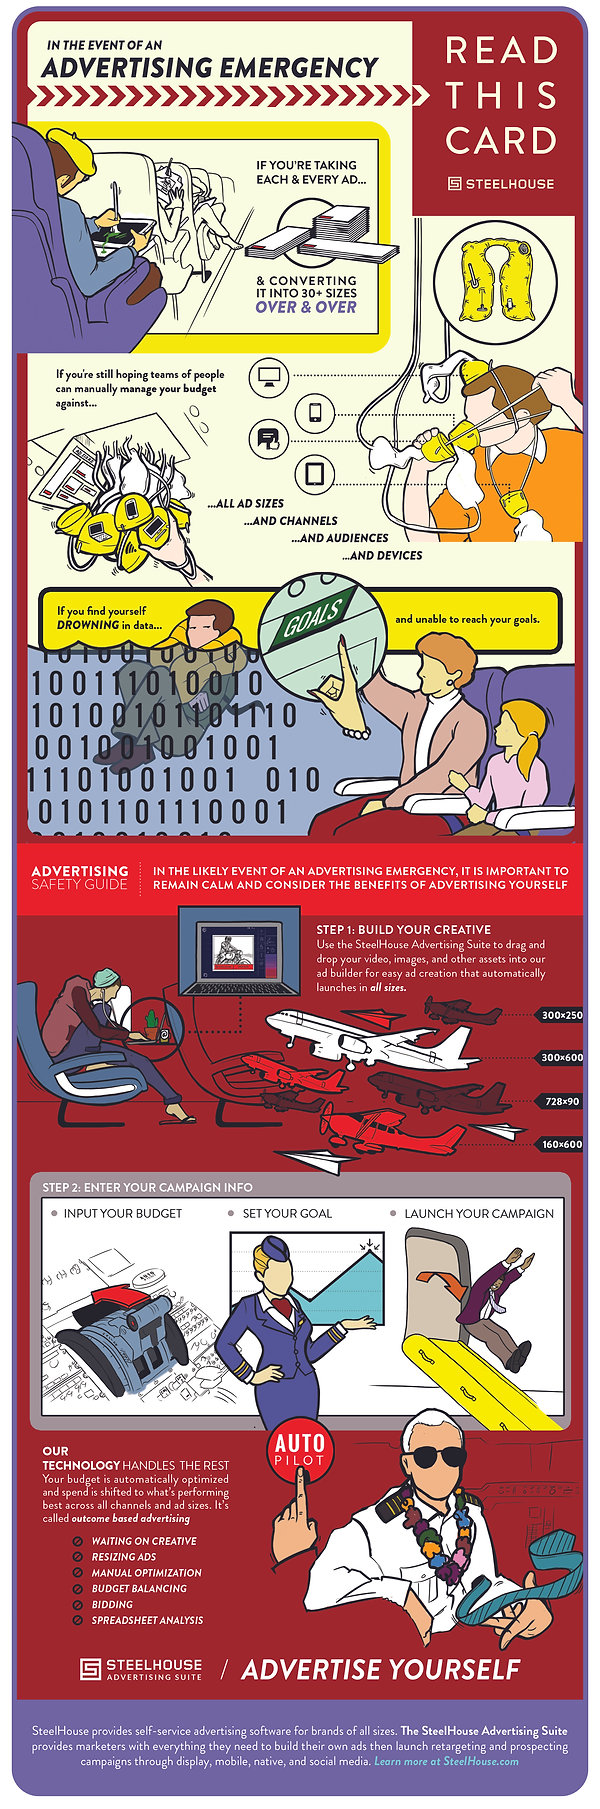 FlightCard_Infographic.jpg